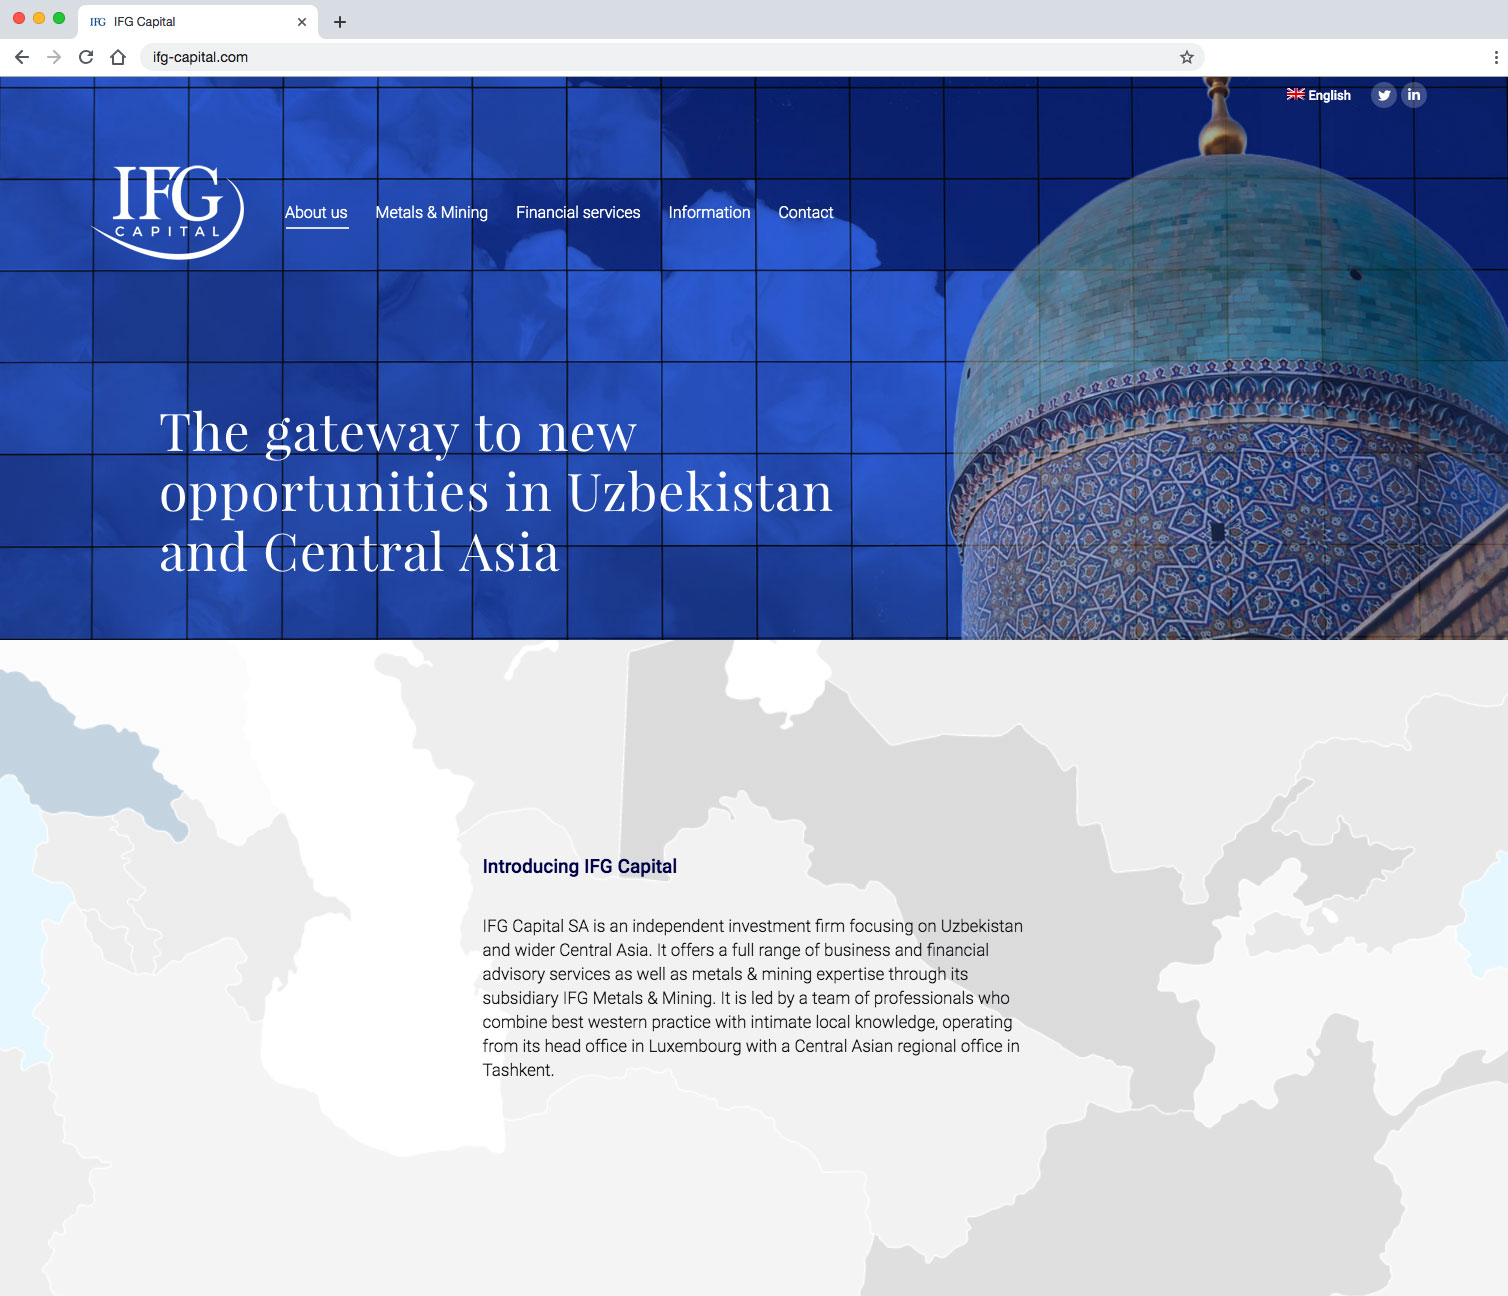 IFG Capital - Home page